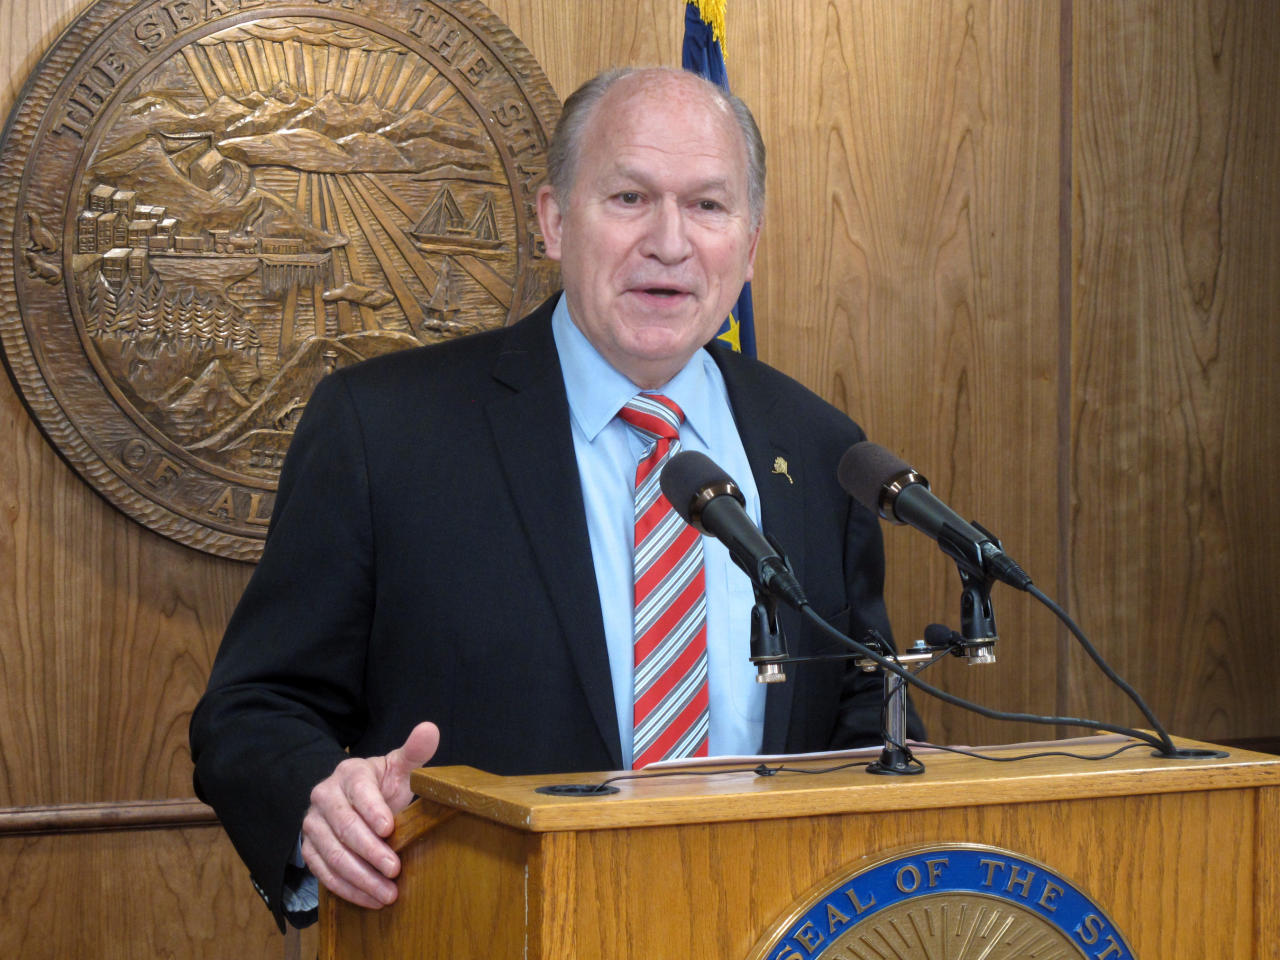 FILE - In this Tuesday, April 18, 2017, file photo, Alaska Gov. Bill Walker addresses reporters during a news conference in Juneau, Alaska. Governors in states that expanded Medicaid are wary of a bill revealed Thursday, June 22, by Republican leaders in the U.S. Senate. The expansion of the state-federal program has allowed 11 million lower-income Americans to gain health coverage. Walker, a Republican-turned-independent, said in a statement Thursday that he is still reviewing the Senate plan, but had some worries about how it might affect his vast and sparsely populated state, where health care costs are high. (AP Photo/Becky Bohrer, File)